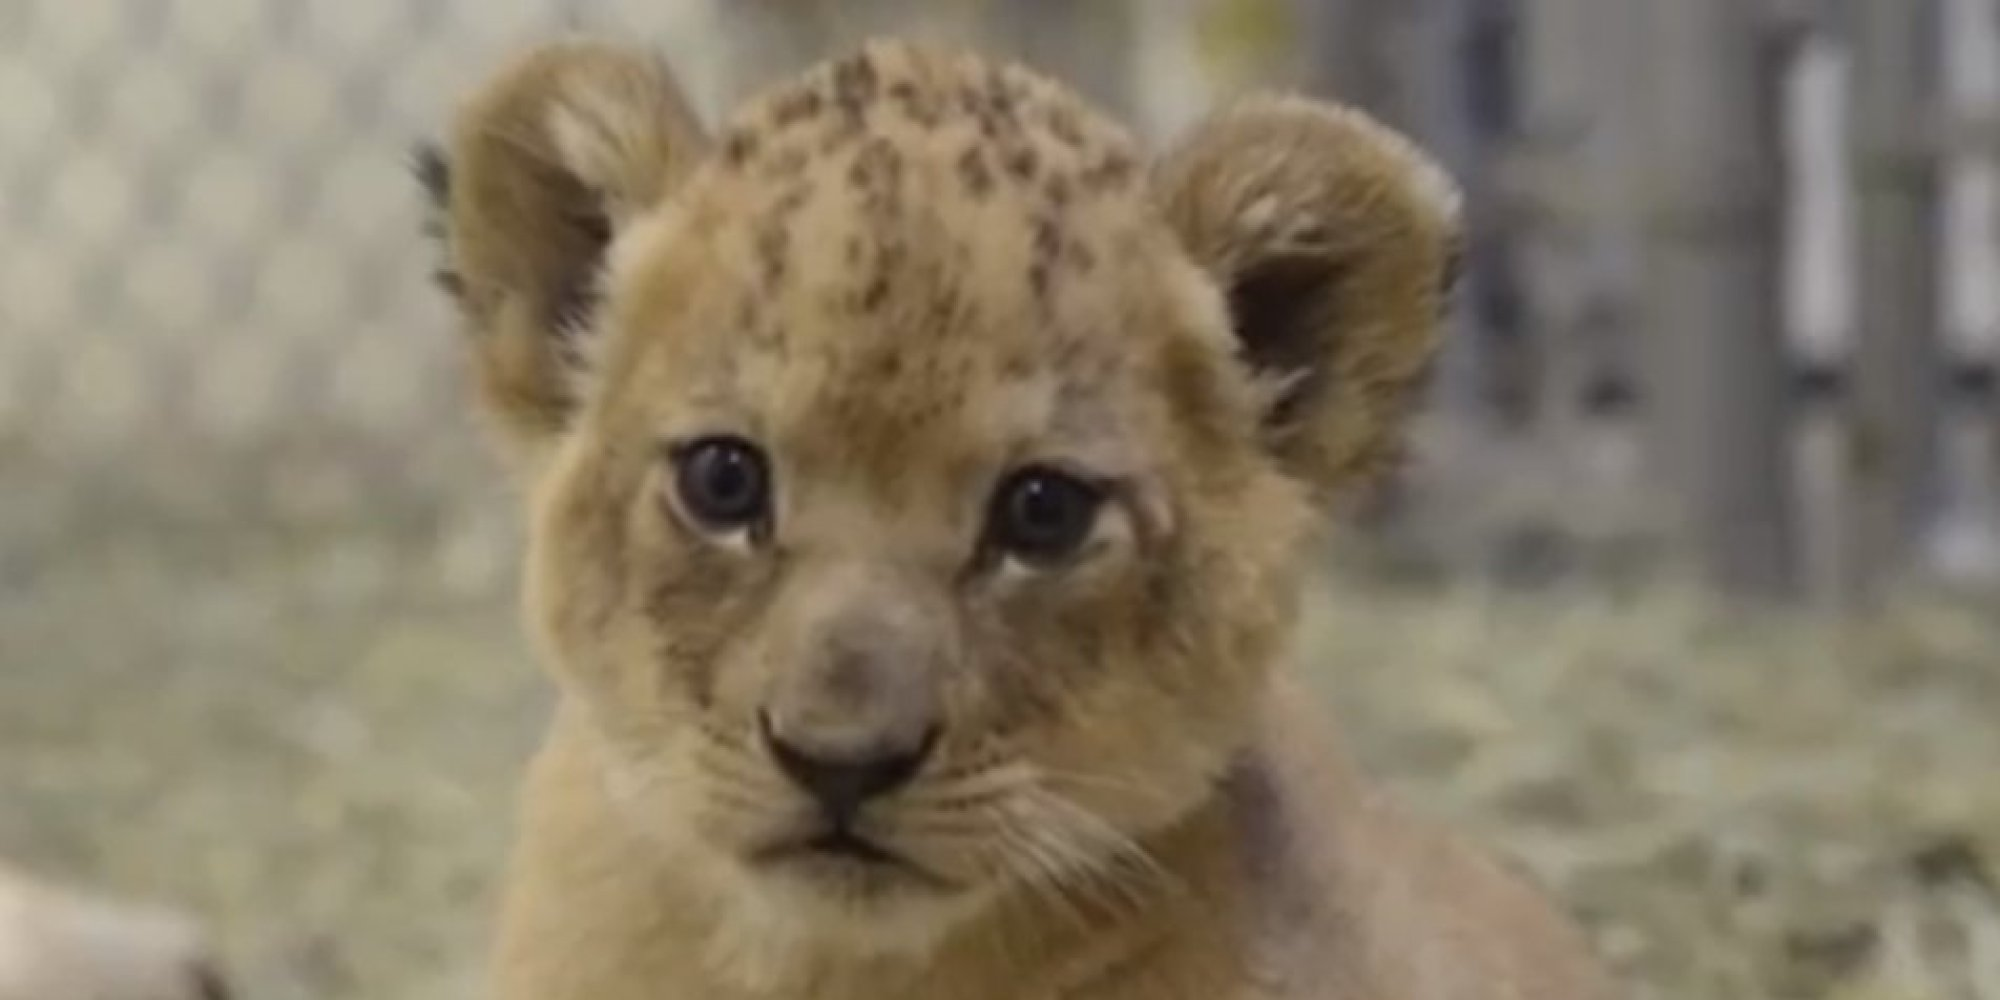 Tribal Cute Wallpaper These 5 Week Old Lion Cubs Playing In Their Den Will Cheer